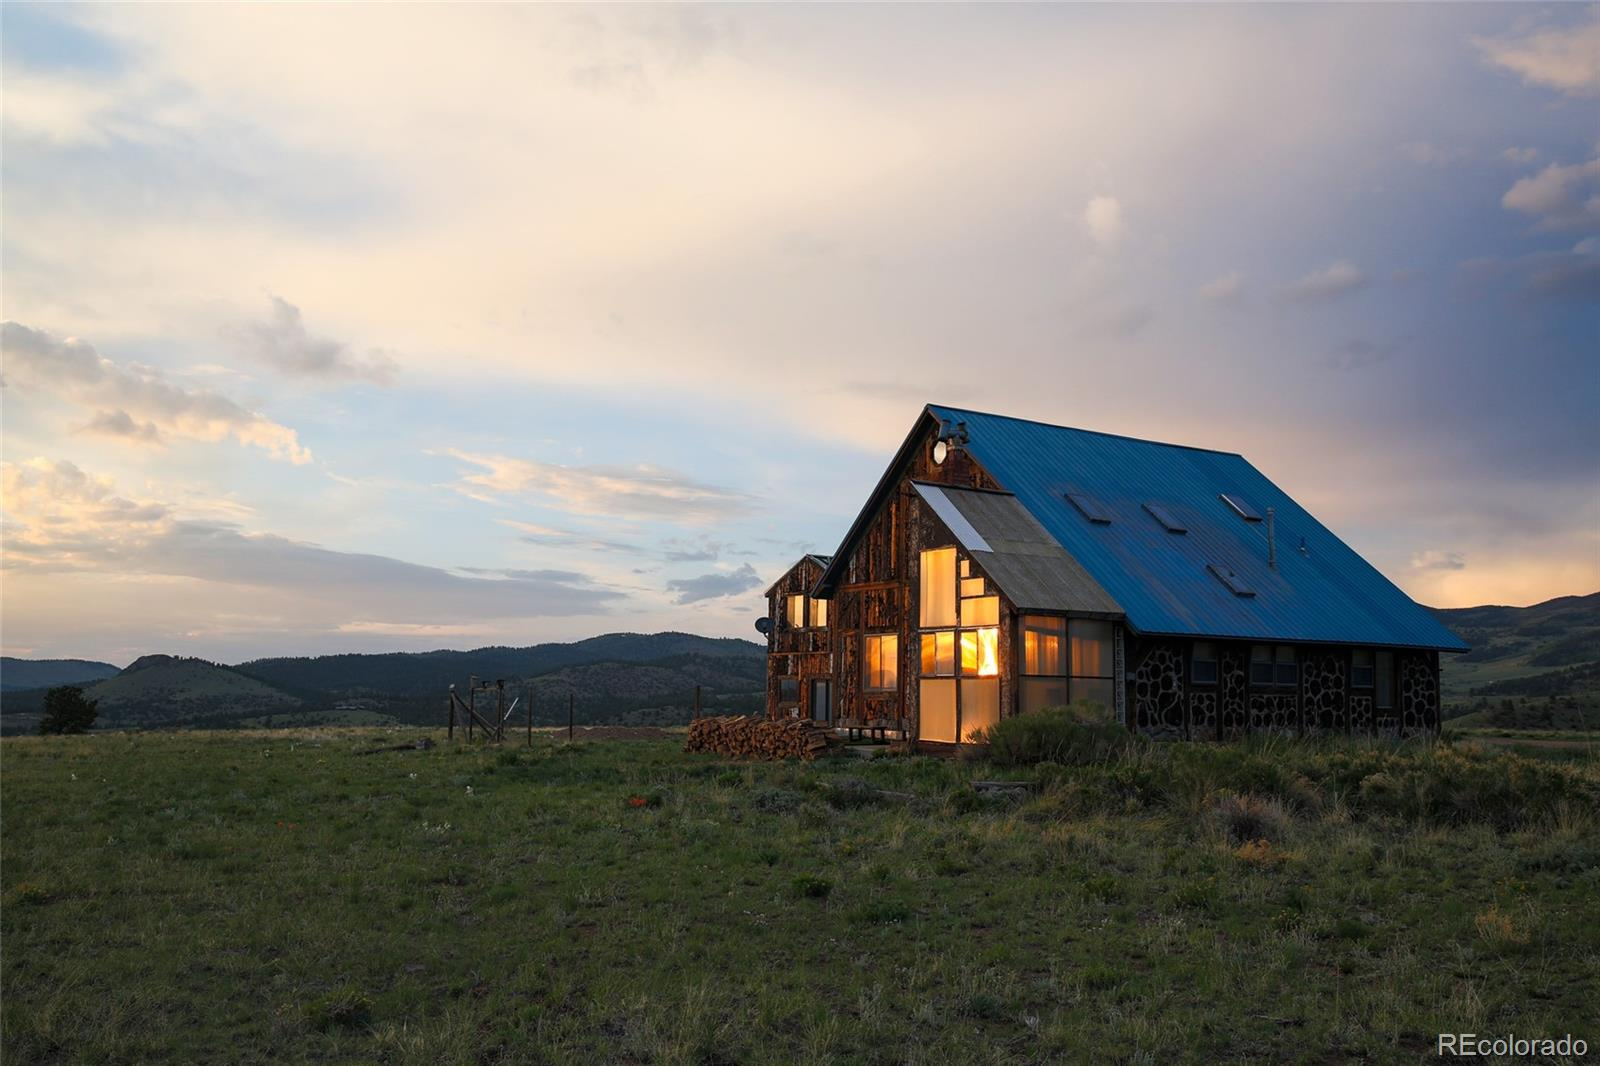 Your opportunity to make this artist home on 35 acres into your dream get-away! This off-grid home is powered by solar and comes complete with a welcoming second guest apartment. The mountain views from this home are jaw dropping! Heated by Wood Stoves, Propane and Passive Solar. Located in the RR Ranch (Double R Ranch) community with only 8 other properties, providing you with quick and easy community access to the National Forest.  Stepping into the charming main living space is warm and inviting. Unique artist touches add to the welcoming appeal of this mountain get-away.  Thinking self-sufficient homestead or small ranch? Chickens, Horses and personal-use live stock (except swine) are allowed! RV parking. Plenty of room to build your barn or green-house and have a self-sufficient homestead.  Astrotnomist and hobby star gazer dream property! This property is located between two mountain ranges in Westcliffe Colorado, a registered Internetional Dark Sky Community where the night sky views are protected from neighboring city light pollution. The night sky views from this home are world class SPECTACULAR!  Thinking VBRO?  This property is currently a VBRO short term vacation rental. Custer County is a VBRO friendly county. (Please inquire for available information.)  Please note that this home has additional construction needs. The main section of this house (Section A) and the apartment (Section C) are approximately 95% or more complete and move in ready, the remaining sections are in various states of repair and completion. Please see floor plan and agent notes for more information. Possible owner financing to a well qualified buyer. 3D TOUR & FLOOR PLAN HAS BEEN PROVIDED FOR THIS LISTING. MOUNTAIN VIEWS - GOOD PRODUCING WELL (5.5 GALLONS PER MINUTE) - WORKSHOPS - LOTS OF ROOM TO EXPAND  Disclaimer: All statements believed to be accurate but must be verified by purchaser.